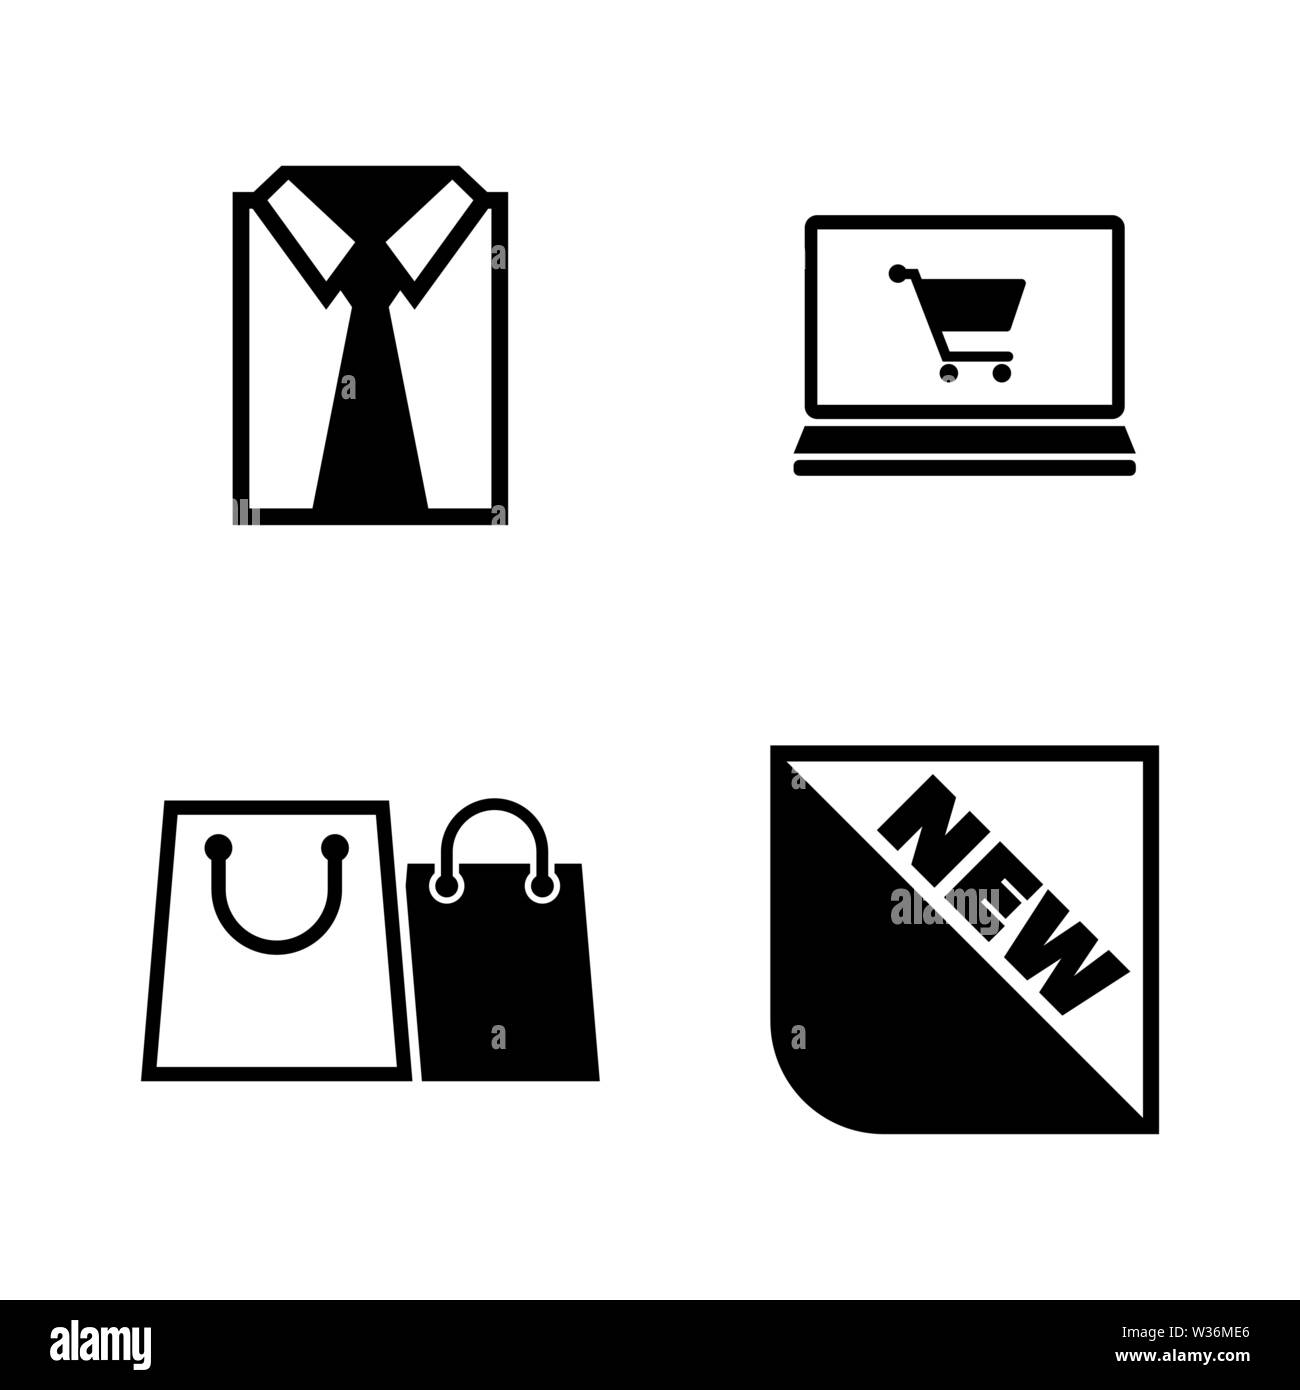 Shopping, Buying Clothes. Simple Related Vector Icons Set for Video, Mobile Apps, Web Sites, Print Projects and Your Design. Shopping, Buying Clothes - Stock Image